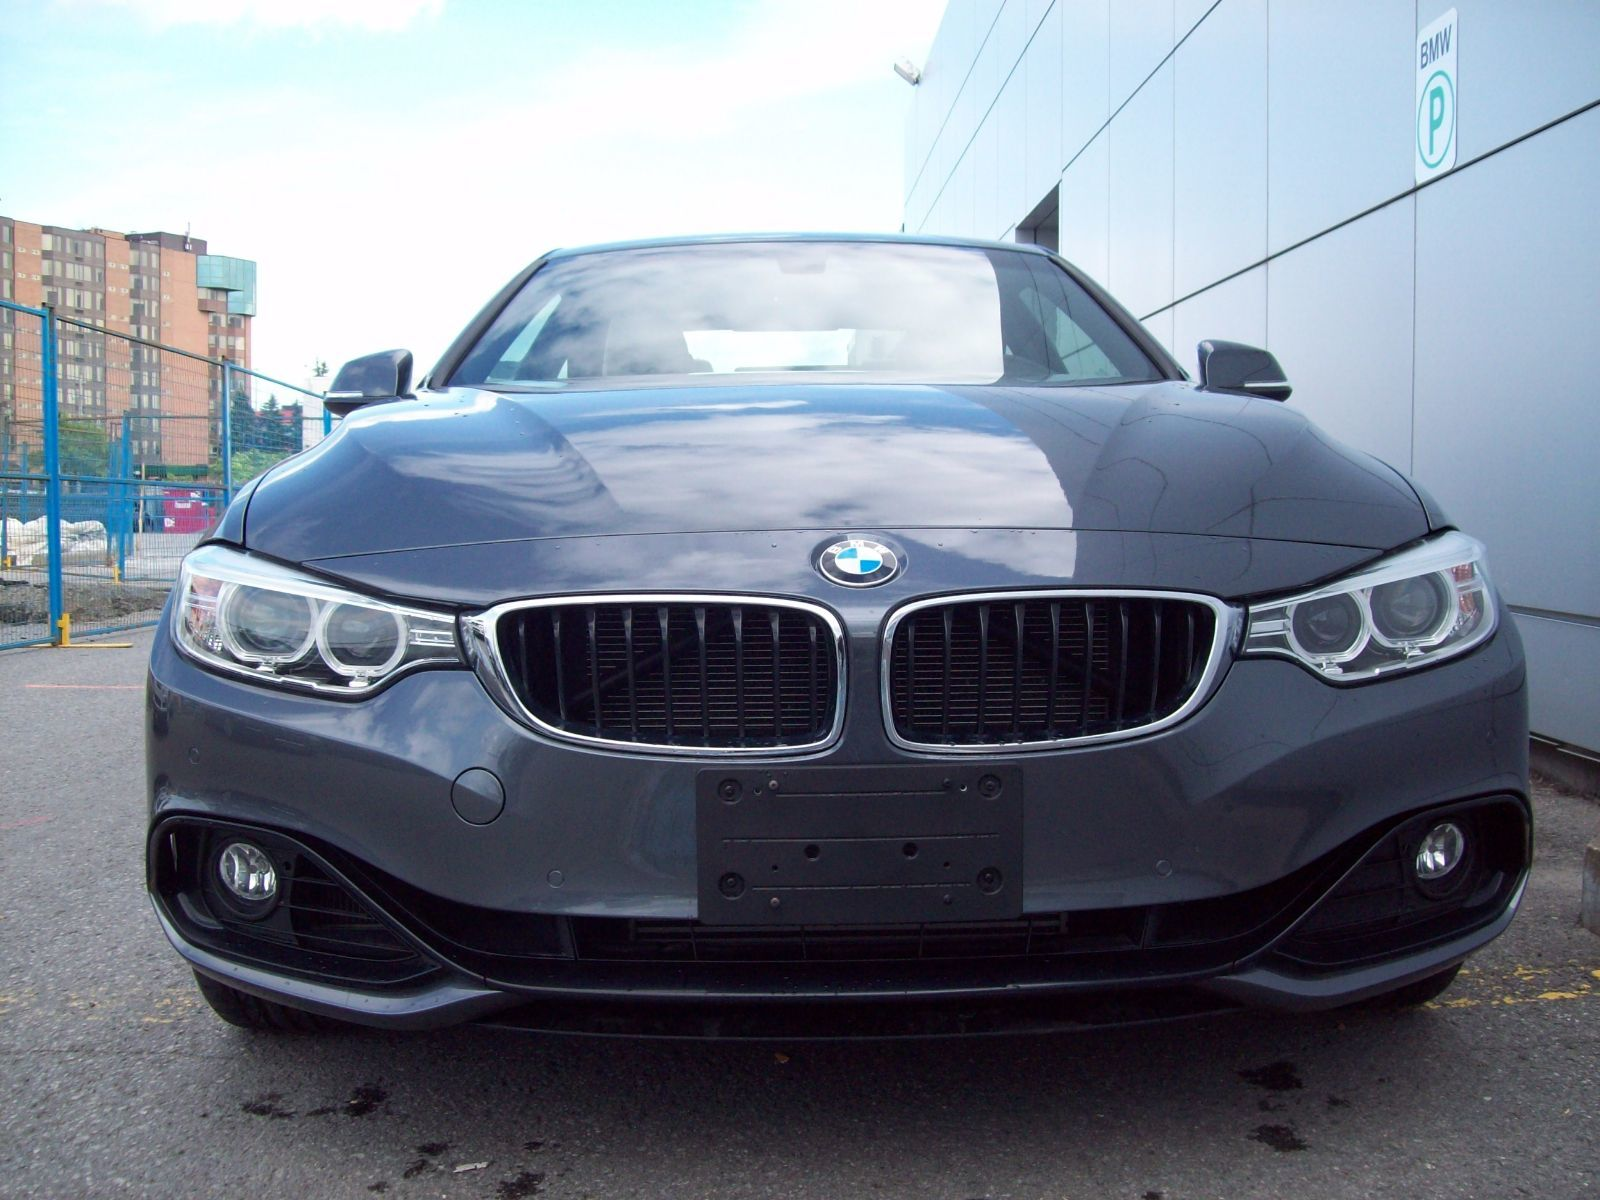 pre owned 2014 bmw 428i xdrive coupe in ottawa used inventory elite bmw automobile in ottawa. Black Bedroom Furniture Sets. Home Design Ideas